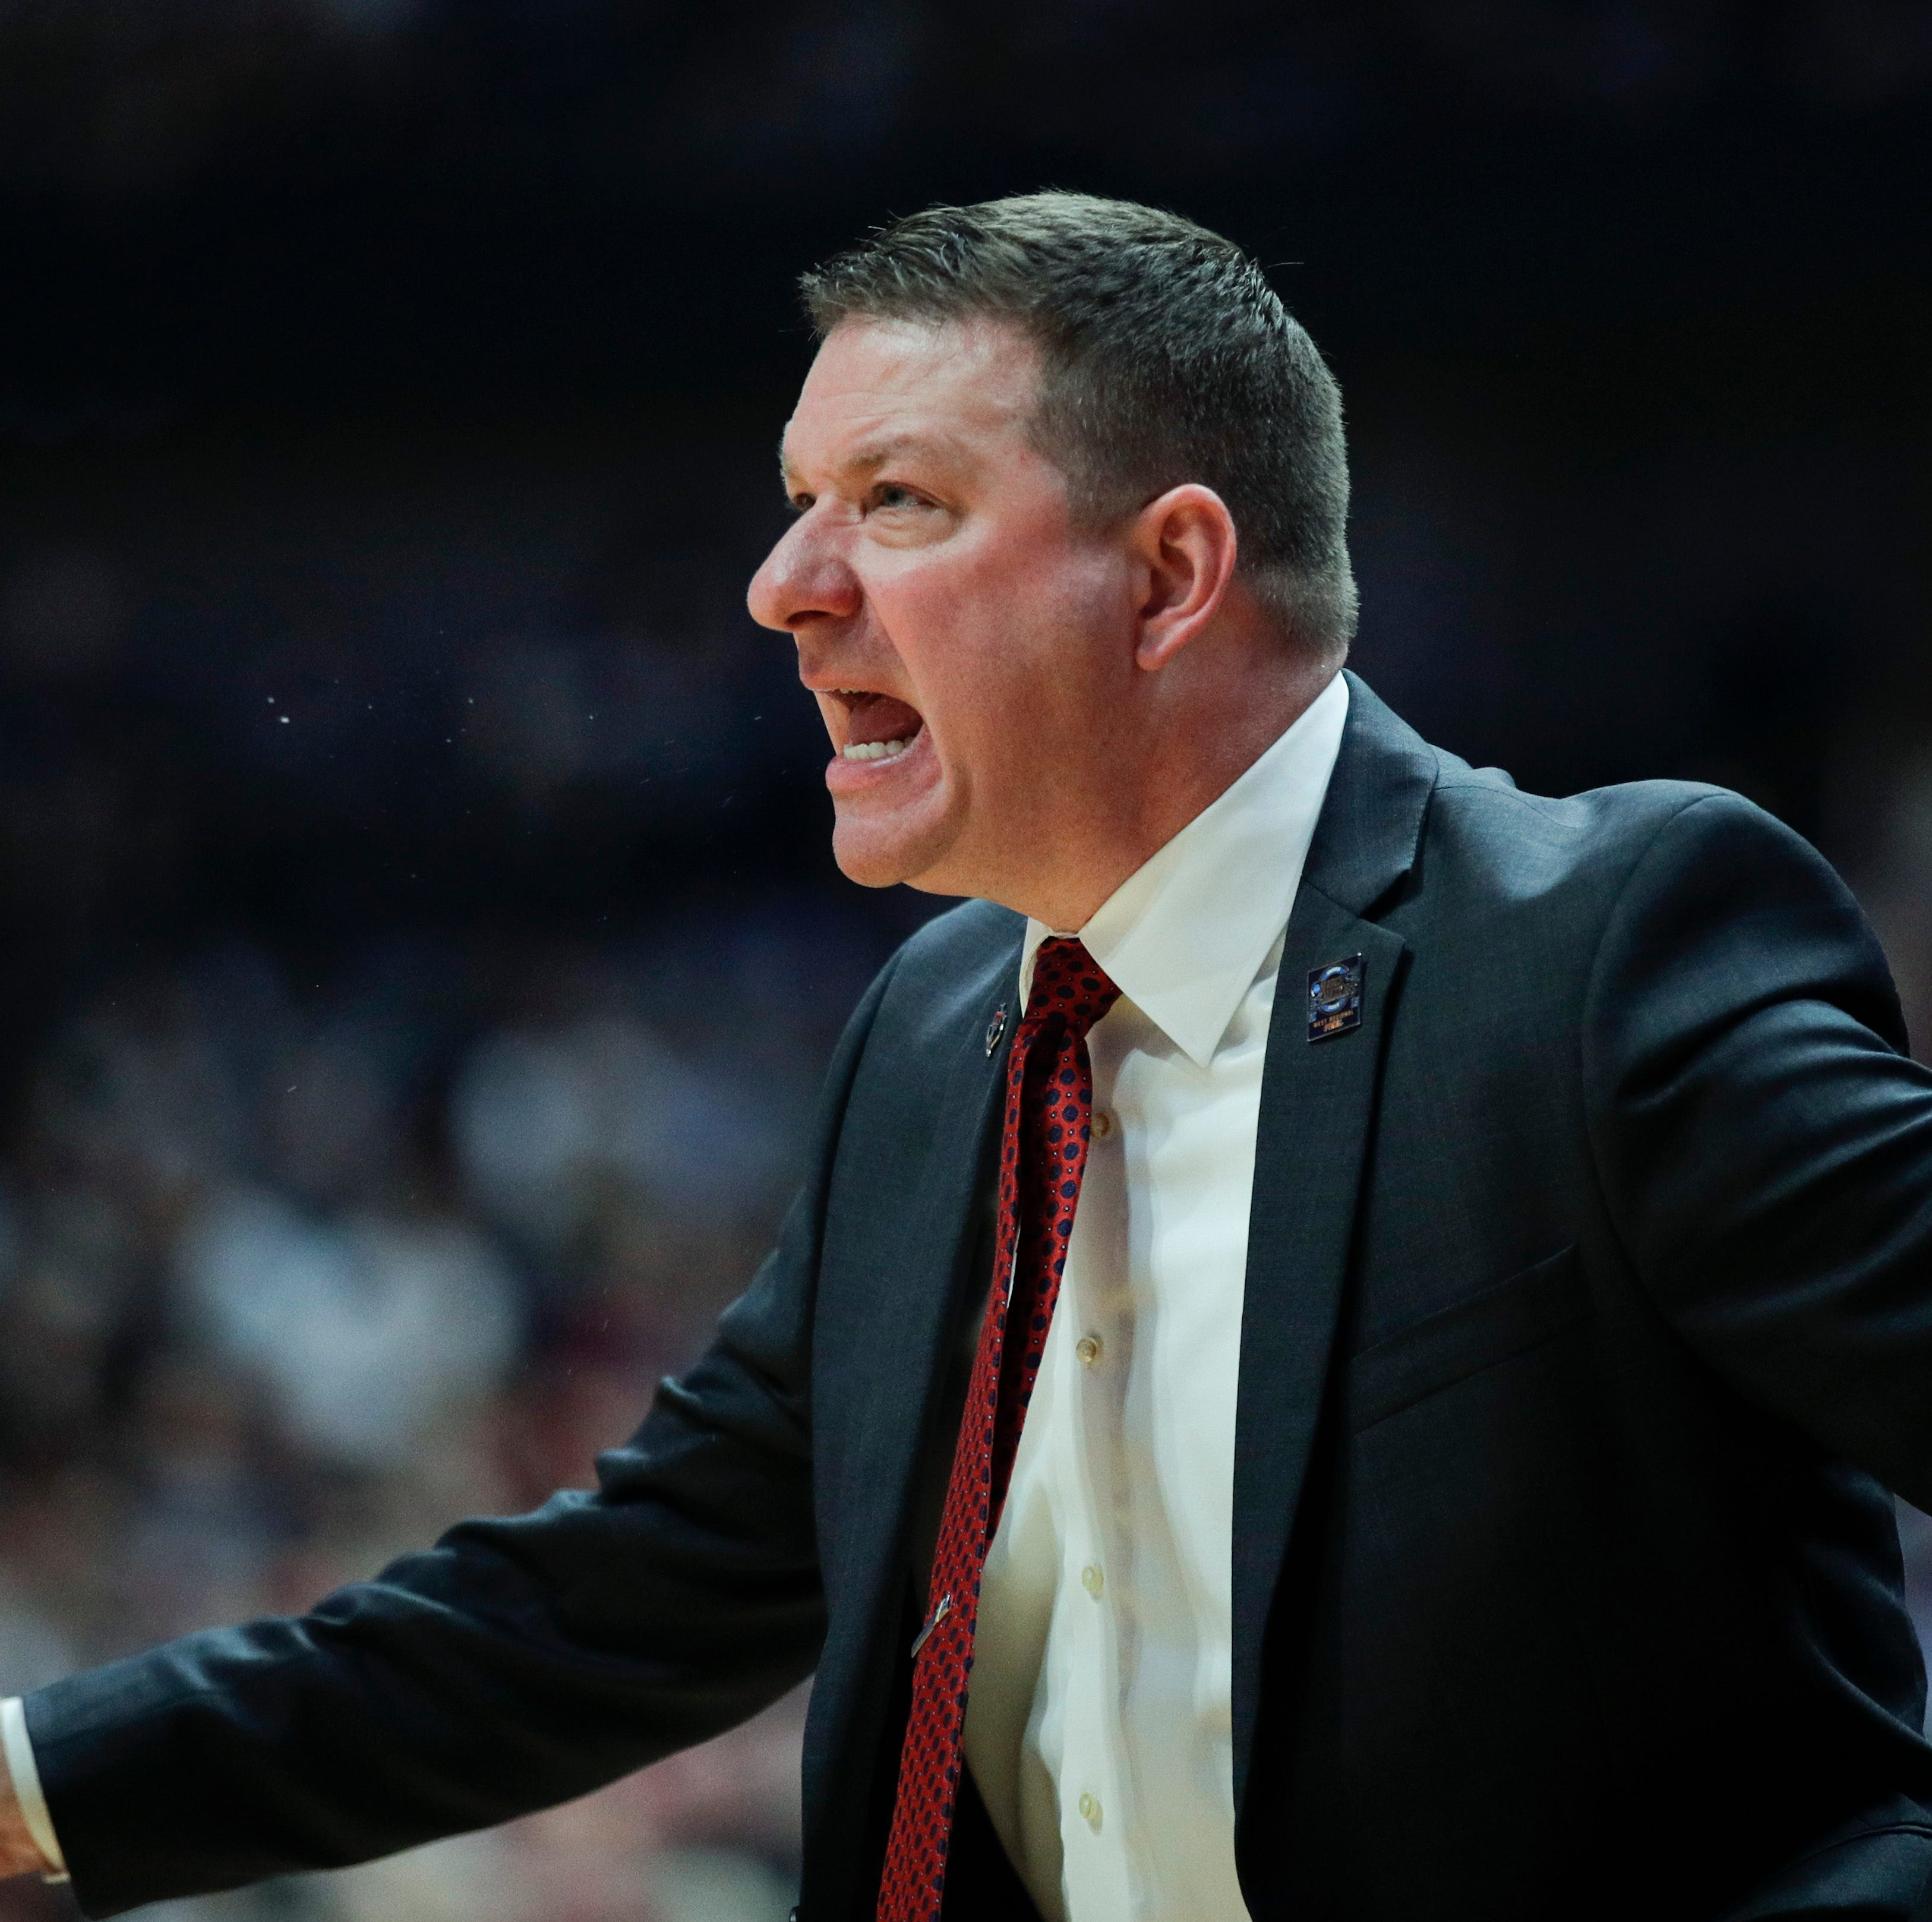 Texas Tech's Chris Beard admires Tom Izzo and Michigan State, won't let team be cowed by Spartans